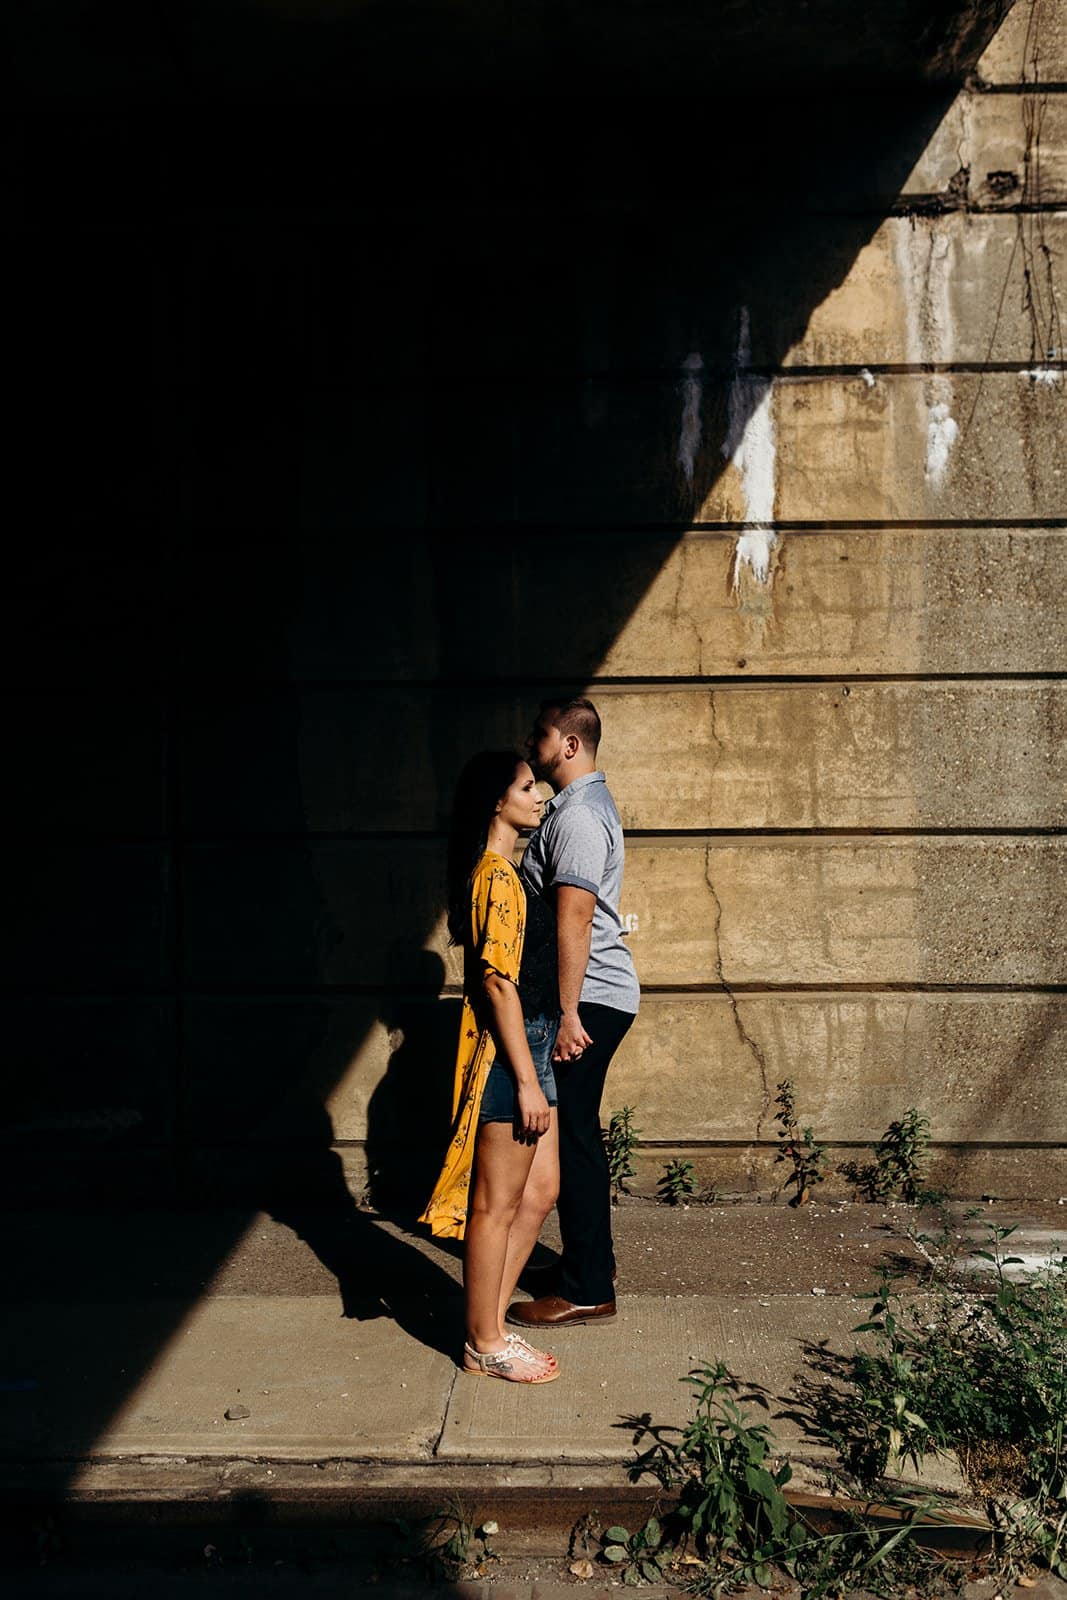 funky triangle shadows with engaged couple posing at underpass in Pittsburgh